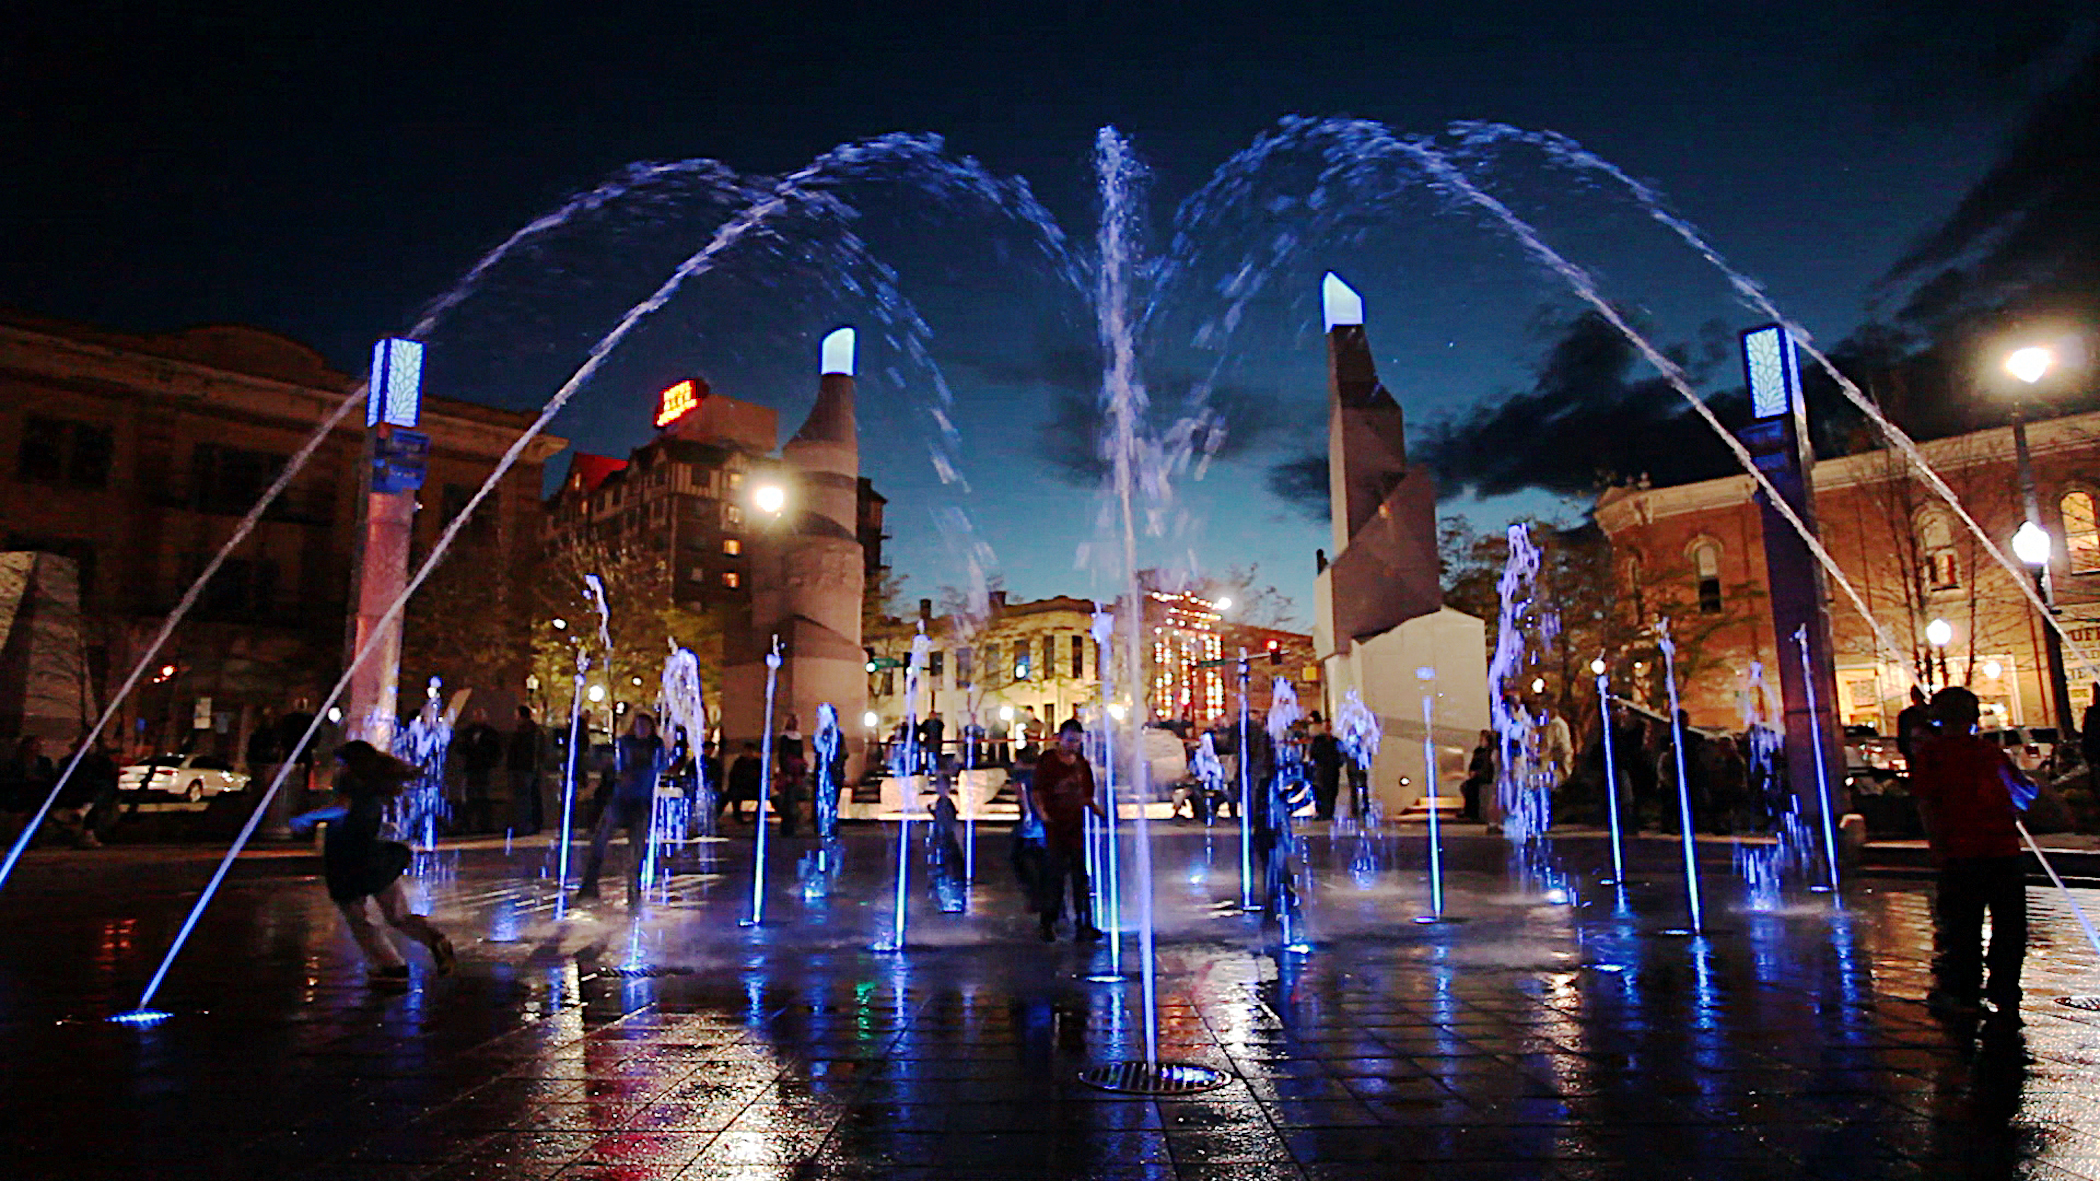 Main Street Square's interactive fountain comes to life after dark. Lights and choreographed water displays create a whimsical place for kids to enjoy.